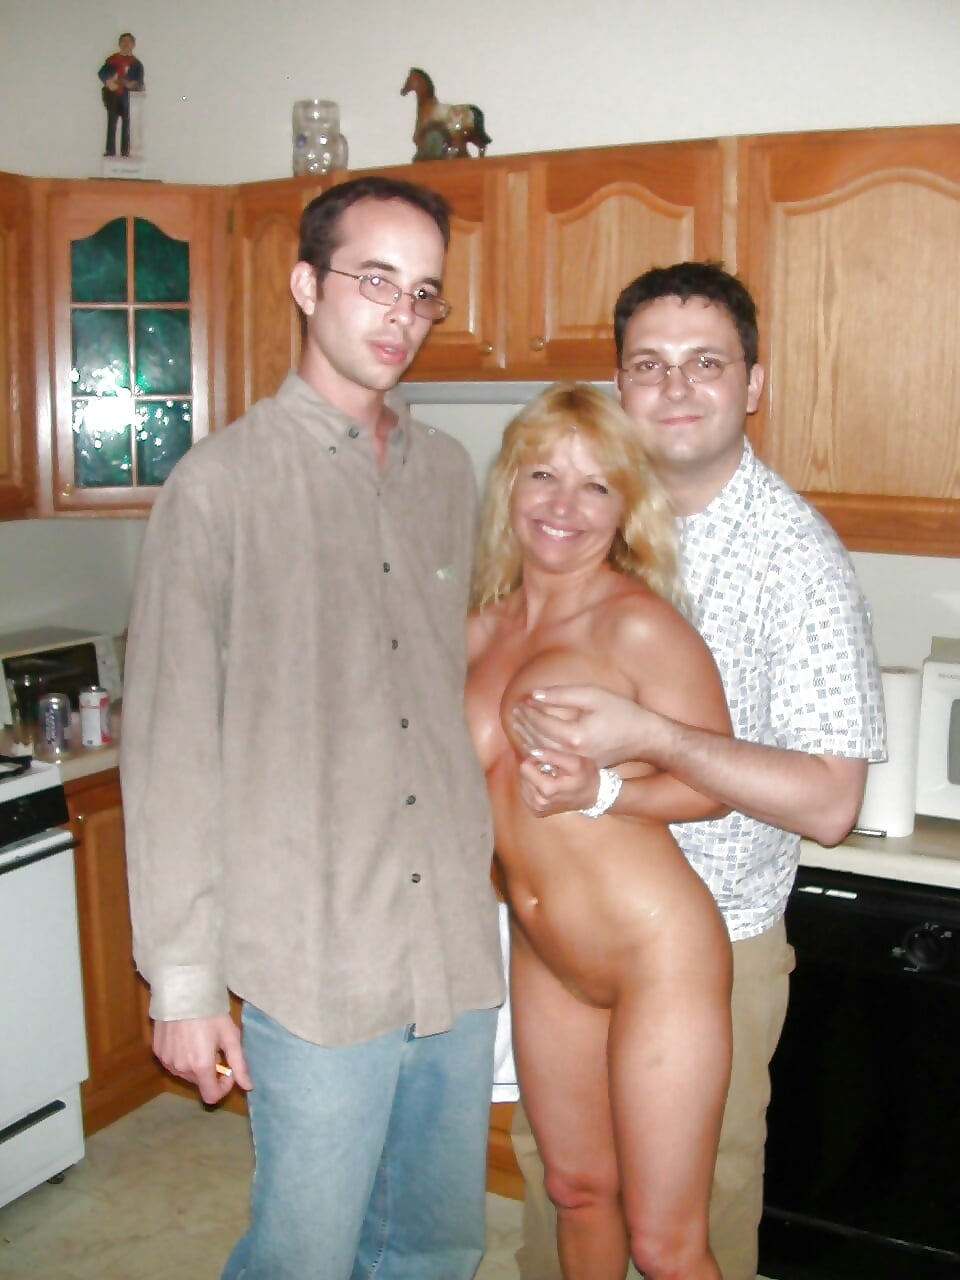 Hot friends naked